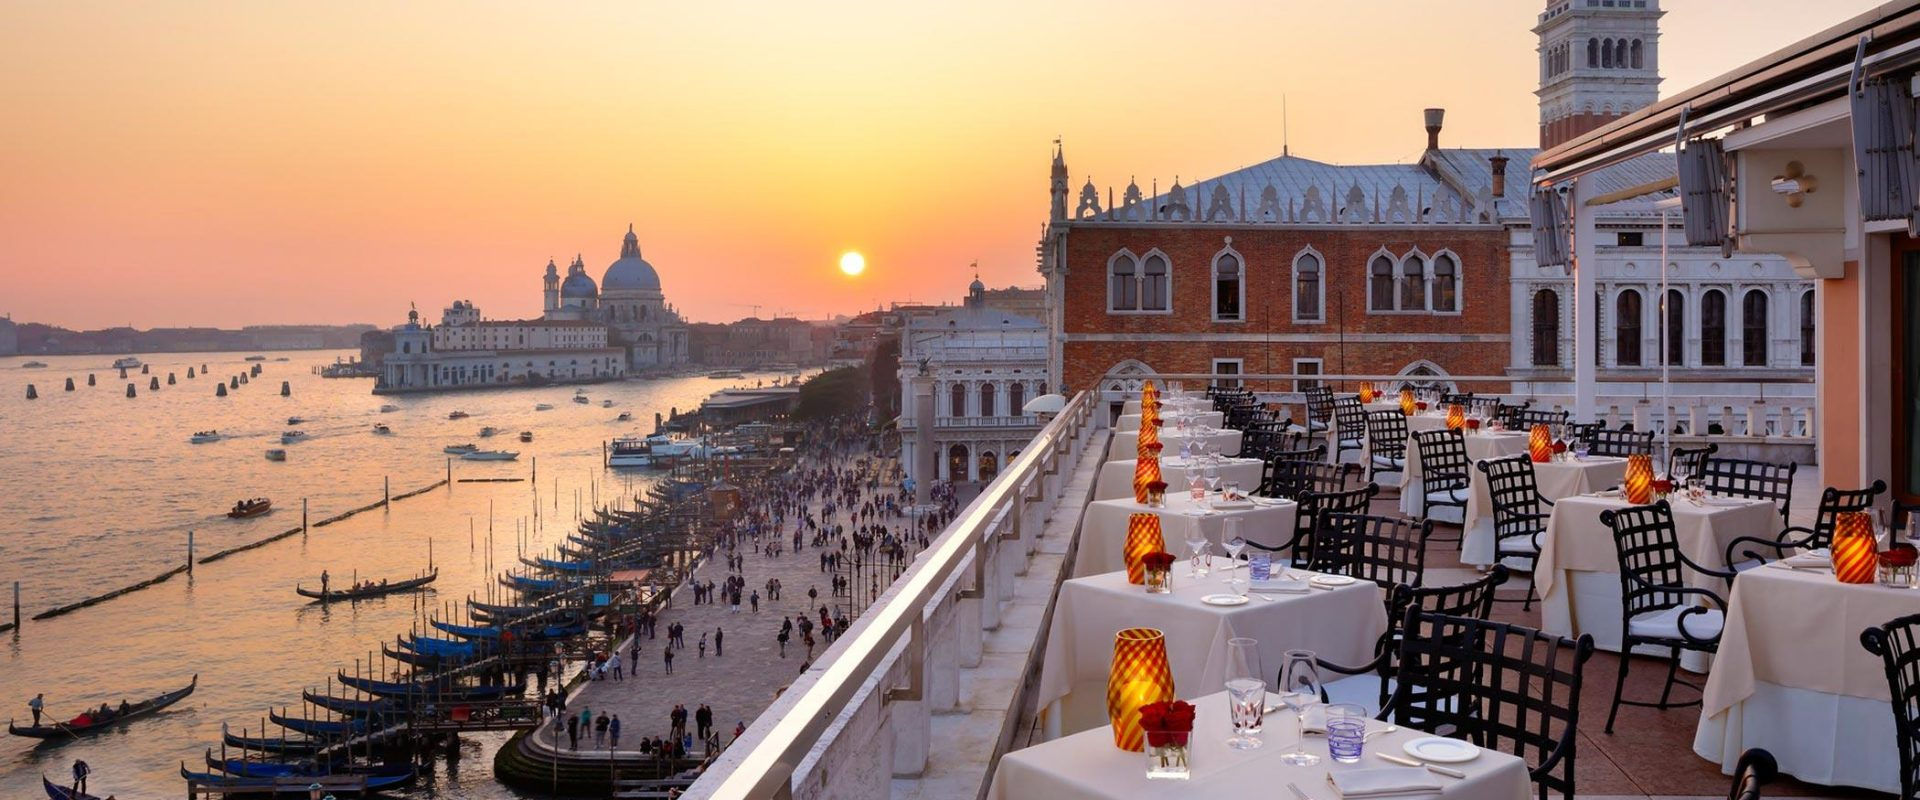 Explore-Italy-Hotel-Danieli-Luxury-Collection-Venice-Restaurant-Terrace-Sunset-View